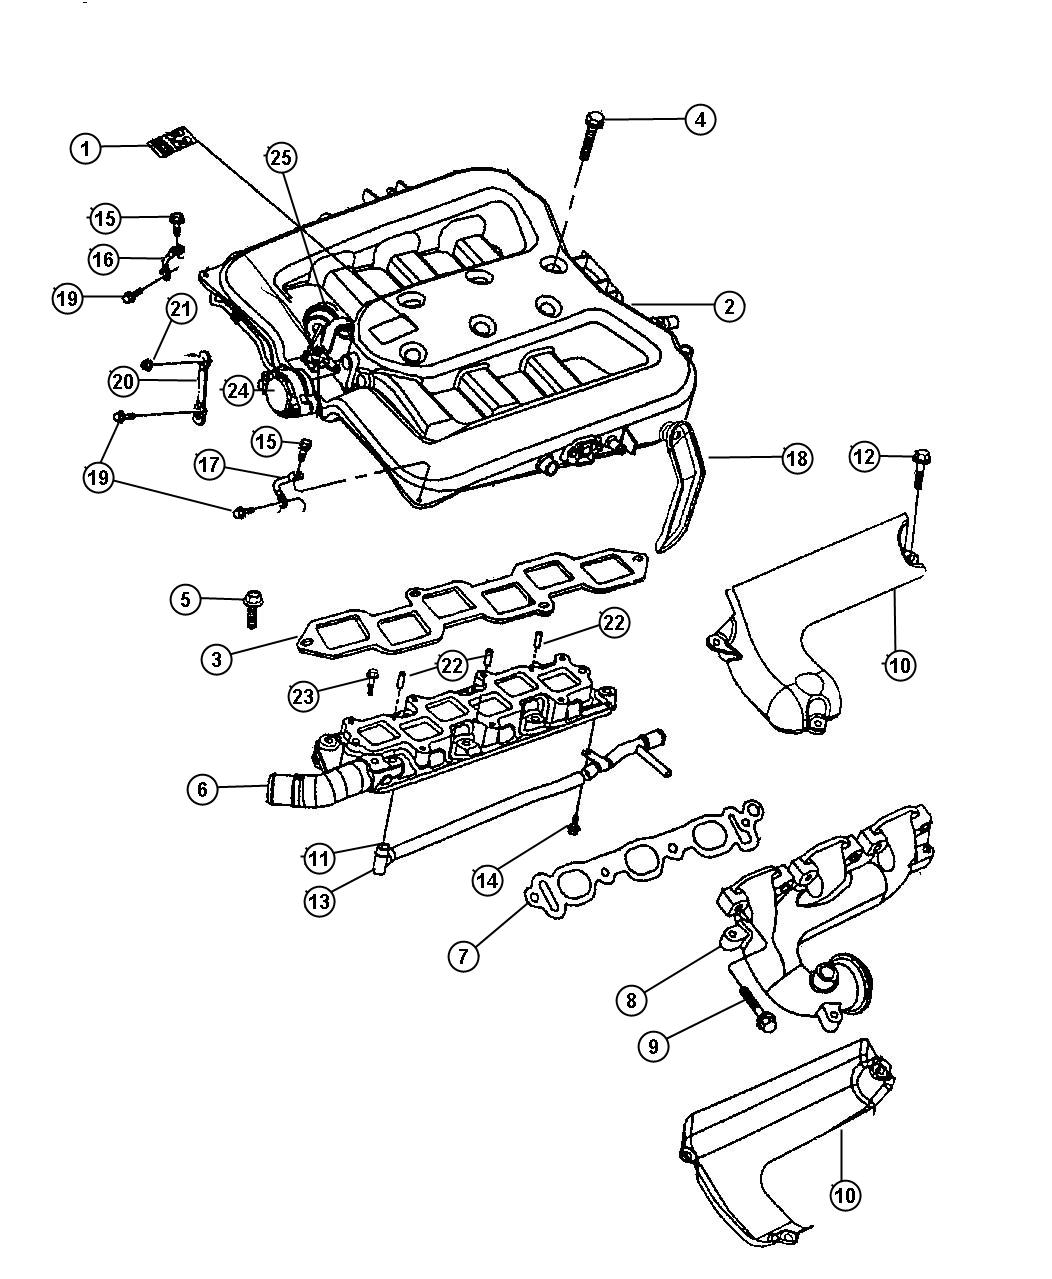 2005 Dodge Caravan Egr Wiring Diagram Auto Electrical Mistral Air Conditioner Related With